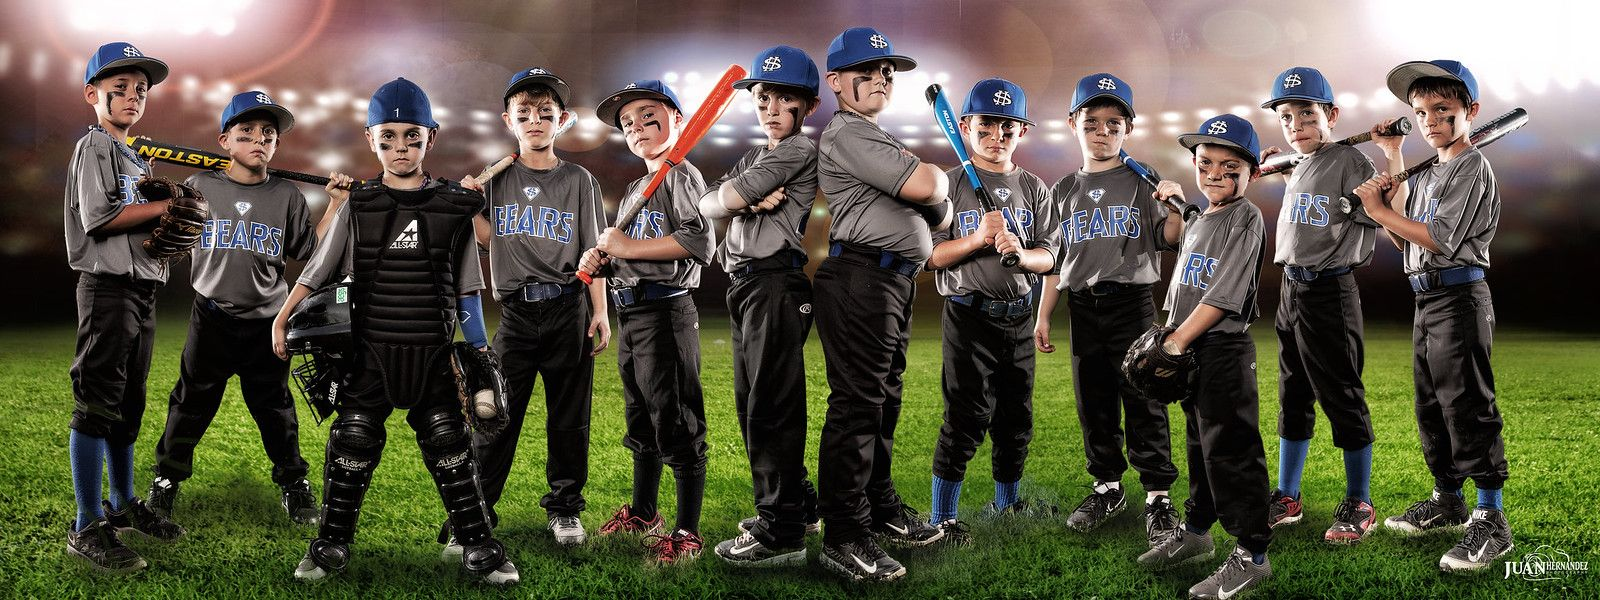 Youth Baseball Composite In 2020 Team Pictures Youth Baseball Baseball Photography